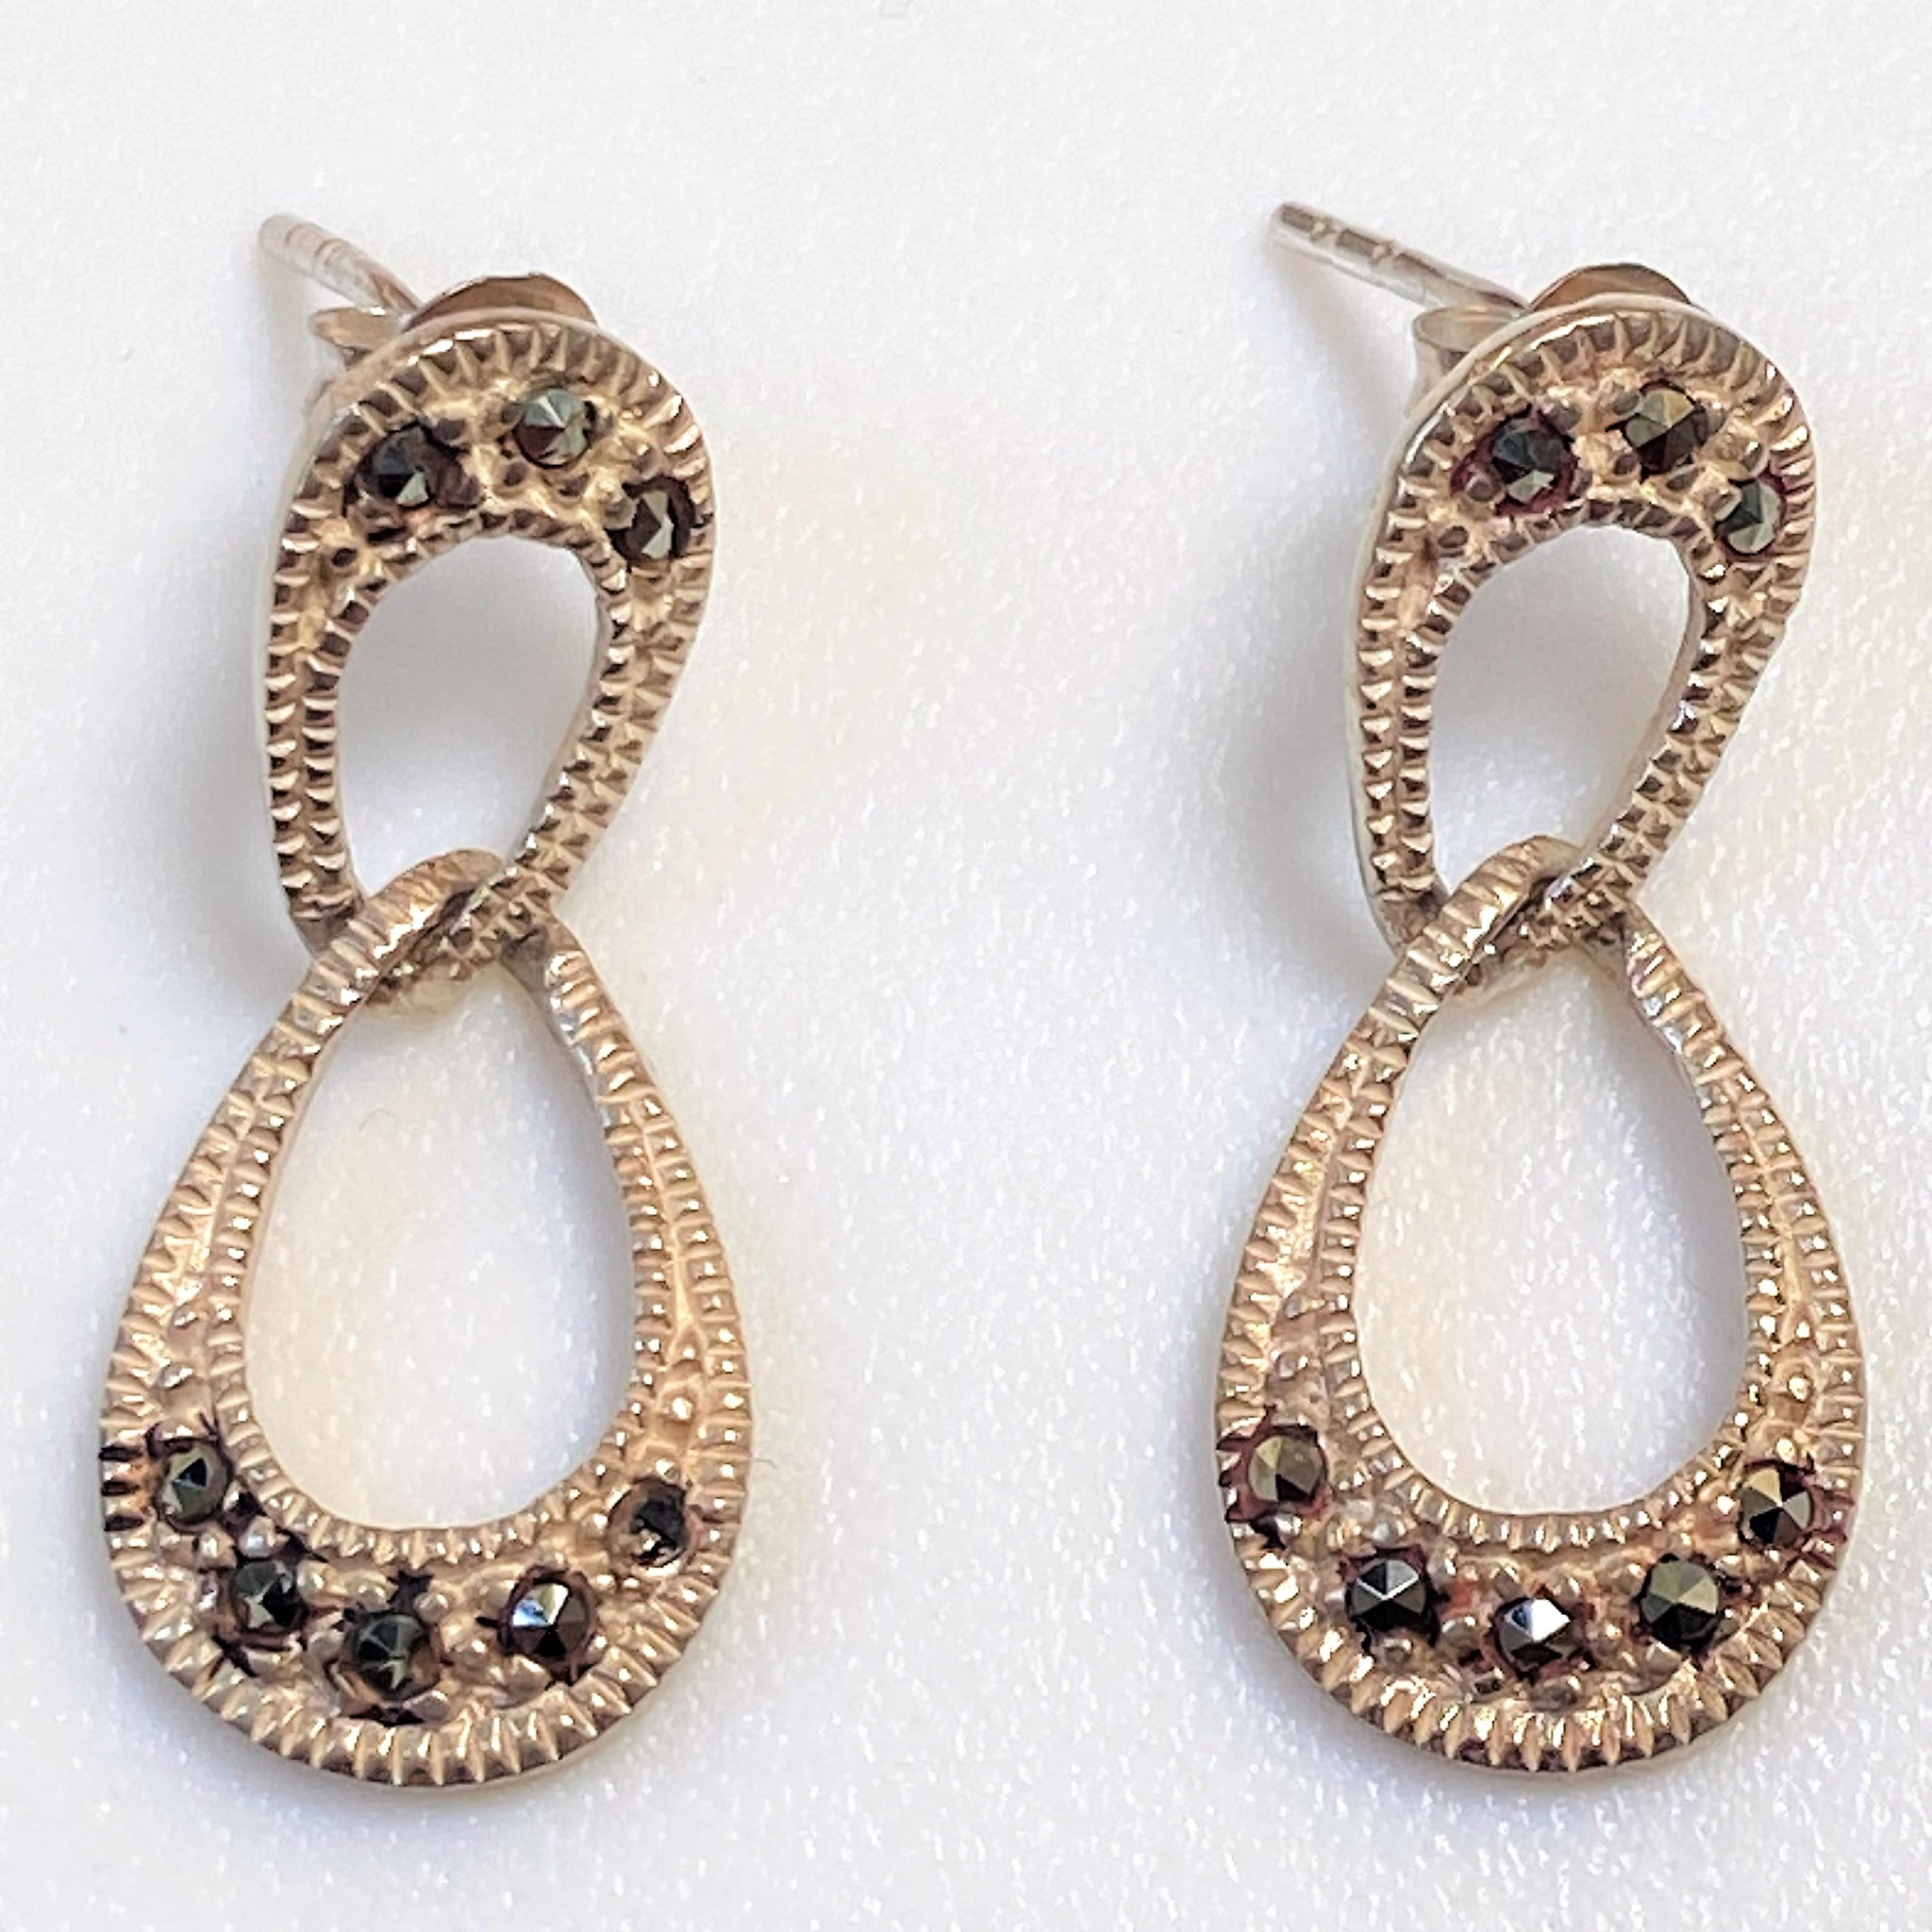 14ct Gold Chinese Character Stud Earrings